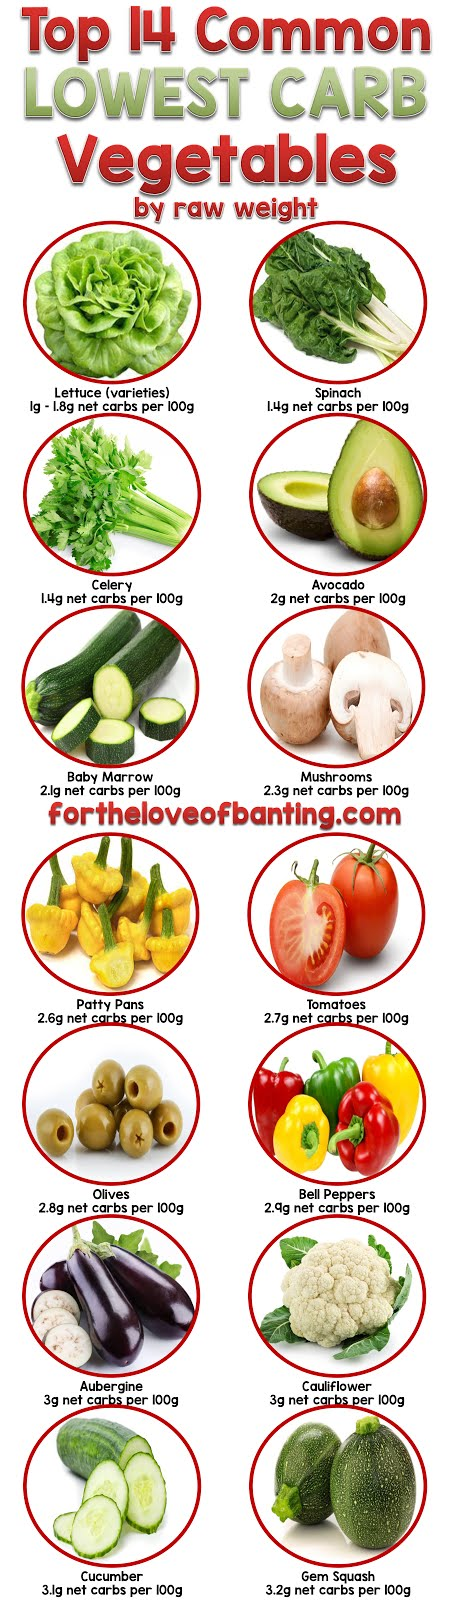 For The Love Of Banting Top 14 Lowest Carb Vegetables